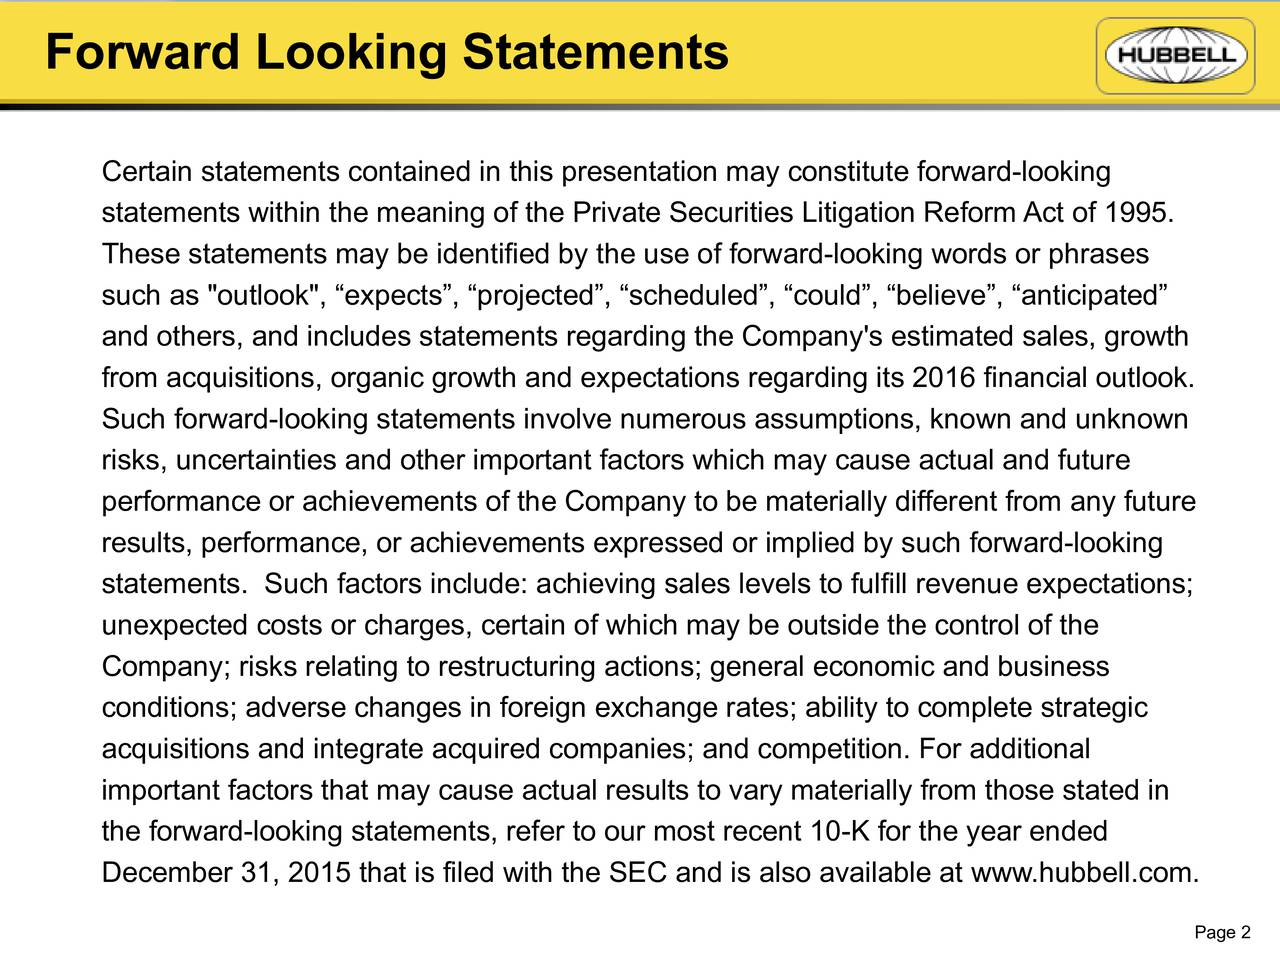 """Certain statements contained in this presentation may constitute forward-looking statements within the meaning of the Private Securities Litigation Reform Act of 1995. These statements may be identified by the use of forward-looking words or phrases such as """"outlook"""", expects, projected, scheduled, could, believe, anticipated and others, and includes statements regarding the Company's estimated sales, growth from acquisitions, organic growth and expectations regarding its 2016 financial outlook. Such forward-looking statements involve numerous assumptions, known and unknown risks, uncertainties and other important factors which may cause actual and future performance or achievements of the Company to be materially different from any future results, performance, or achievements expressed or implied by such forward-looking statements. Such factors include: achieving sales levels to fulfill revenue expectations; unexpected costs or charges, certain of which may be outside the control of the Company; risks relating to restructuring actions; general economic and business conditions; adverse changes in foreign exchange rates; ability to complete strategic acquisitions and integrate acquired companies; and competition. For additional important factors that may cause actual results to vary materially from those stated in the forward-looking statements, refer to our most recent 10-K for the year ended December31, 2015 that is filed with the SEC and is also available at www.hubbell.com. Page 2"""